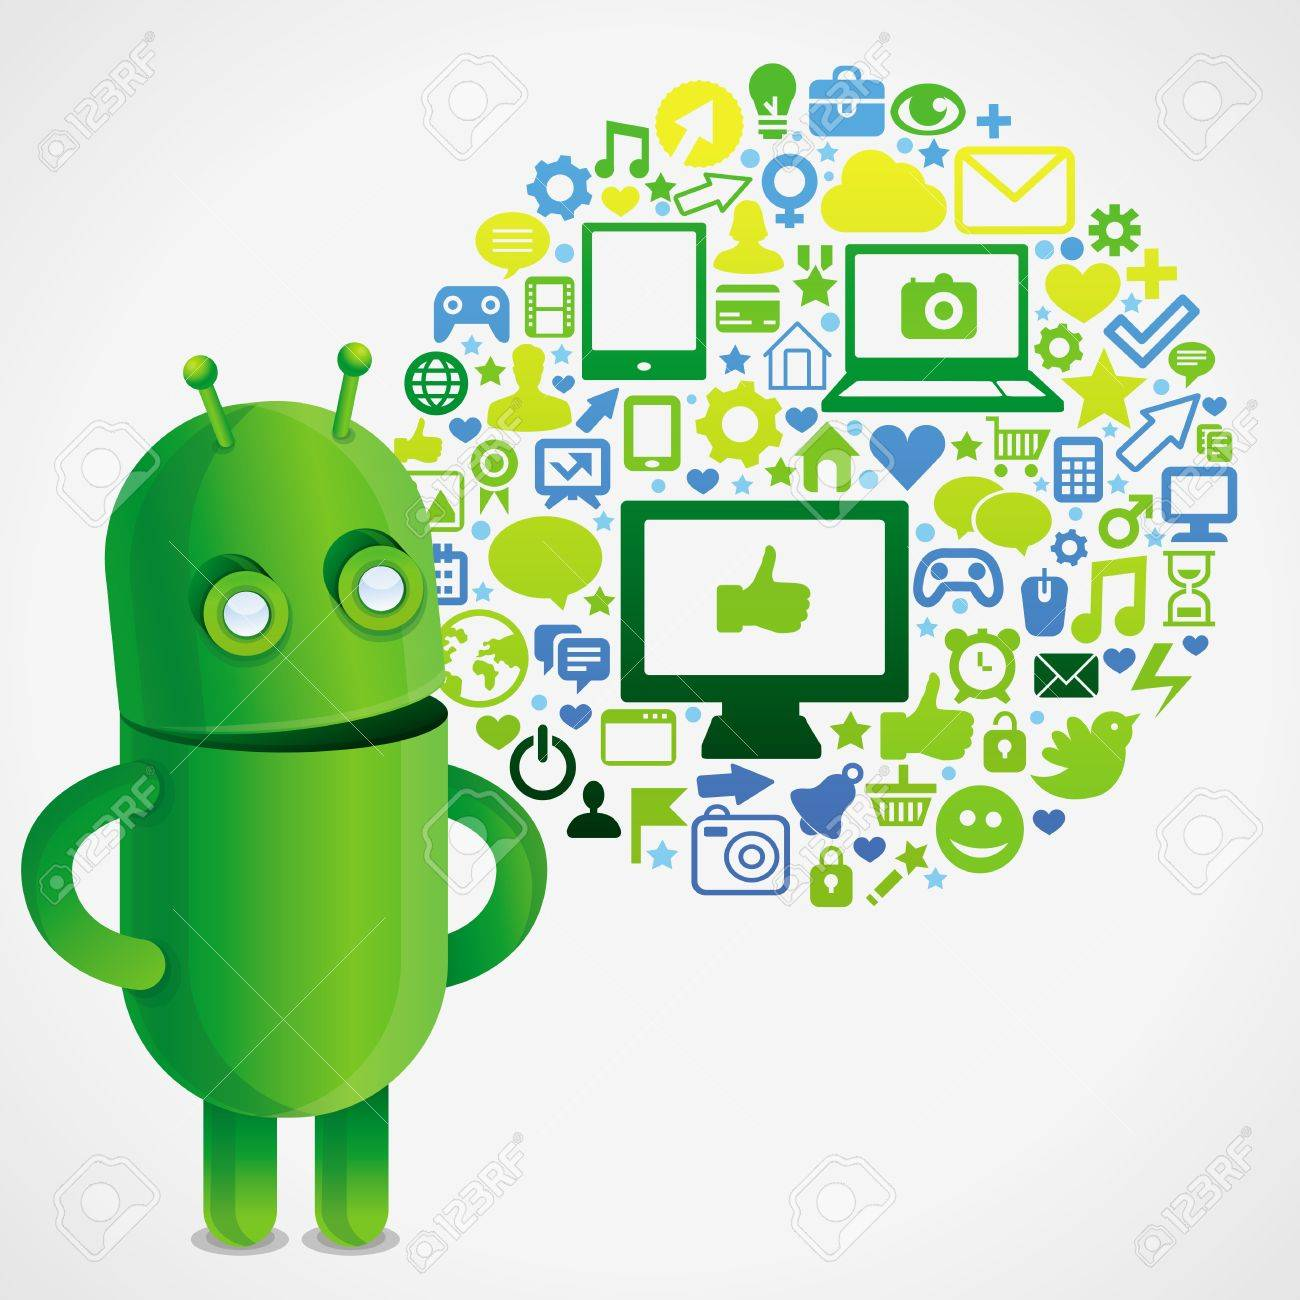 Funny green robot with social media concept  - vector illustration Stock Vector - 15869970